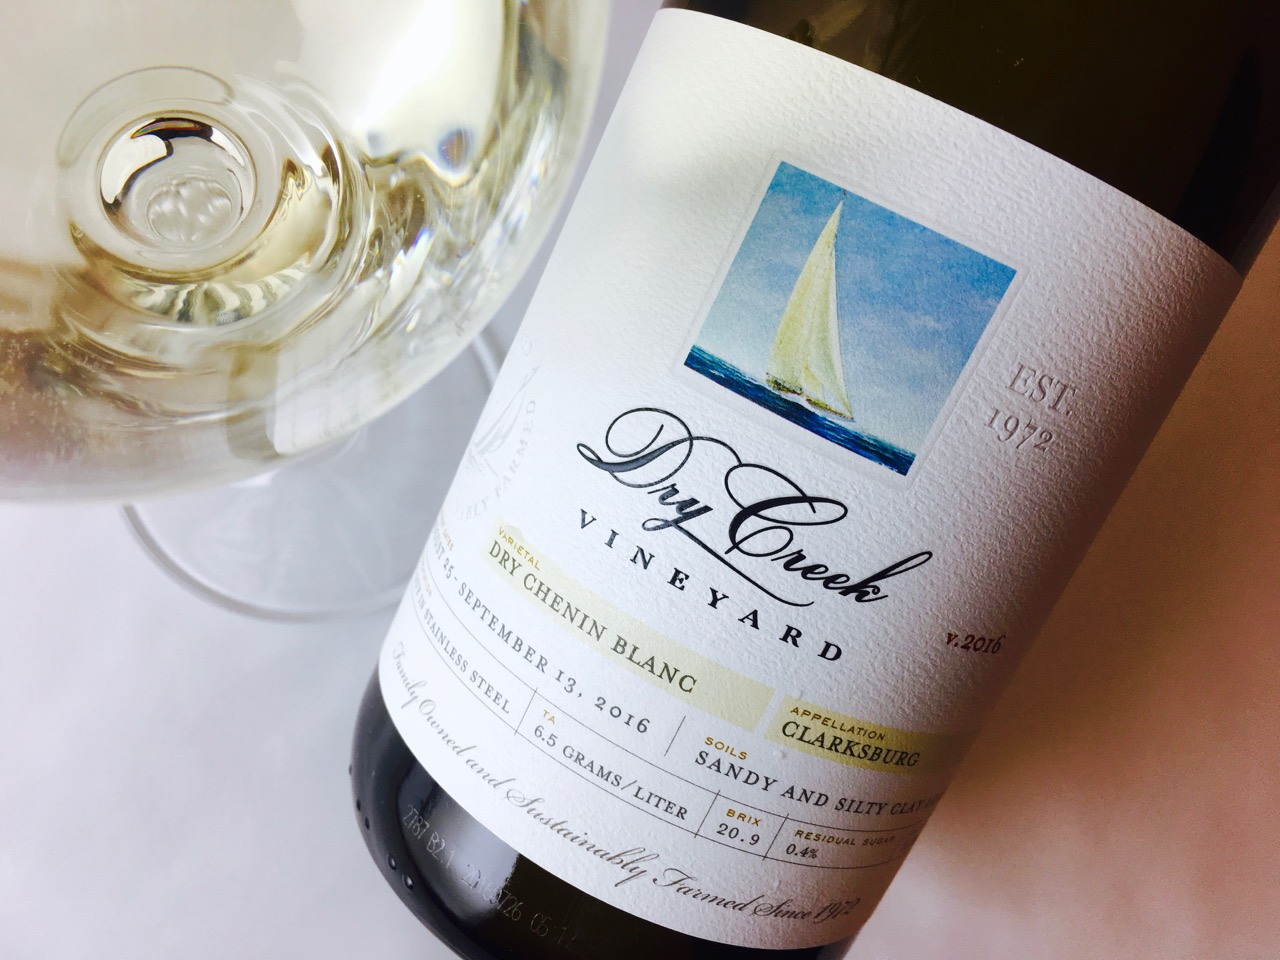 2016 Dry Creek Vineyard Dry Chenin Blanc Clarksburg